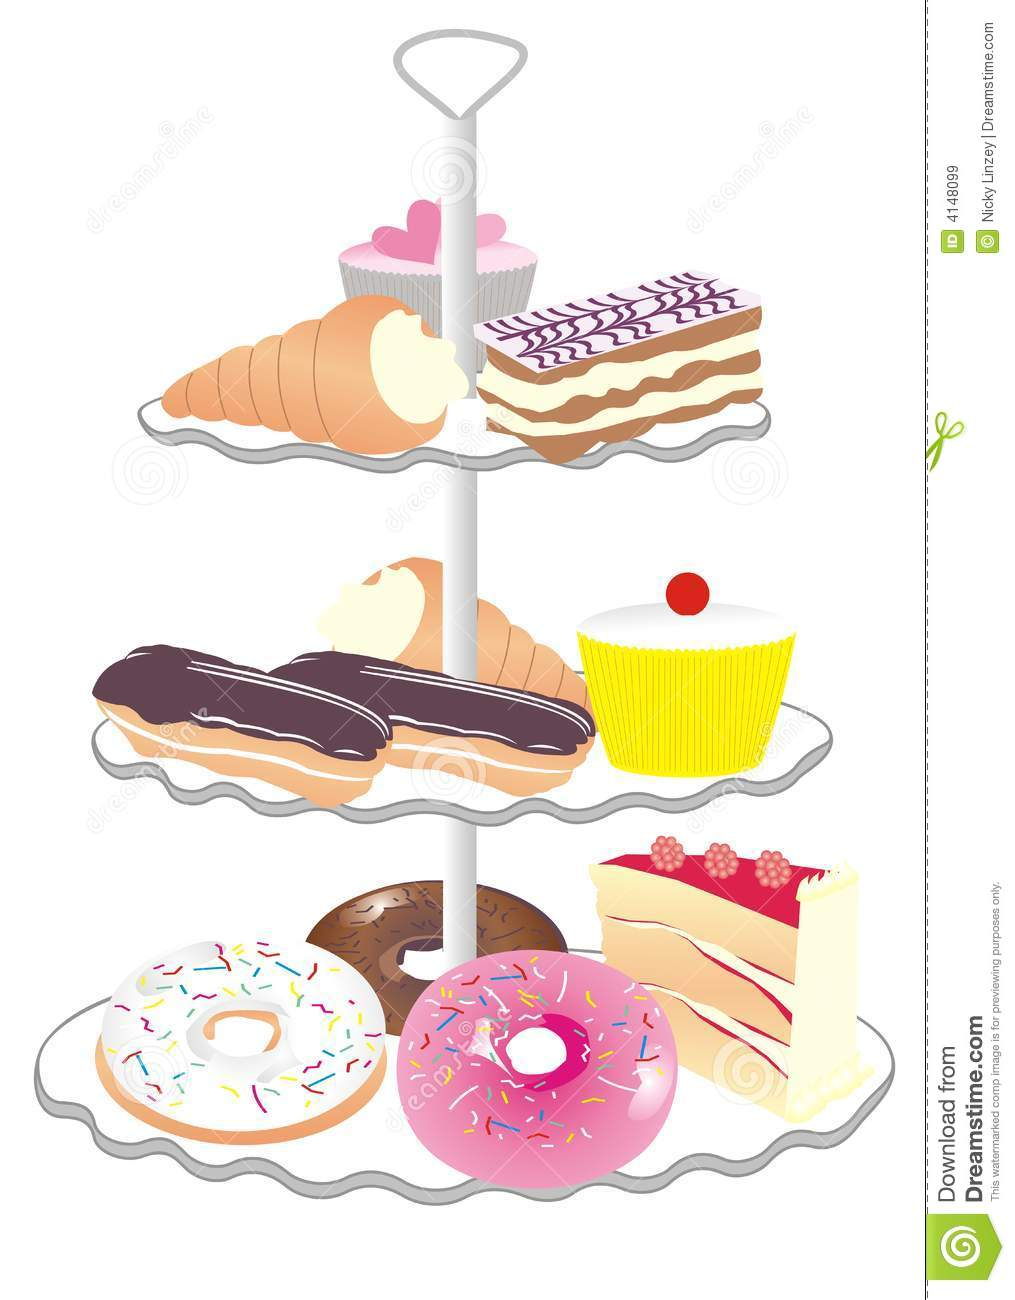 Illustration Of Cream Cakes And Pastries On A Cake Stand